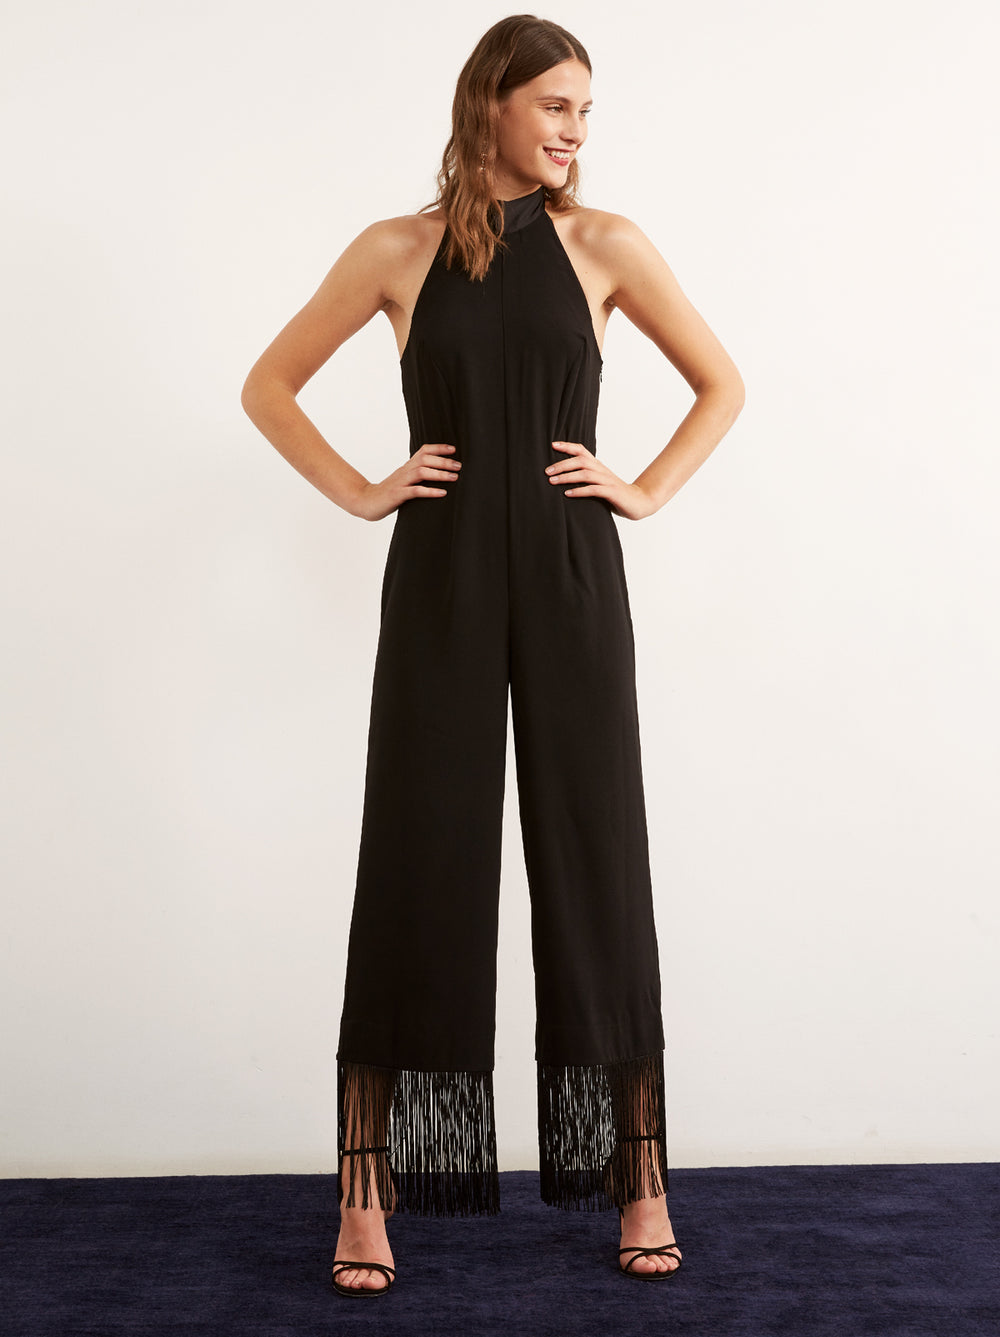 2eb85500790 Nijinsky Black Wide Leg Tassel Jumpsuit by KITRI Studio ...